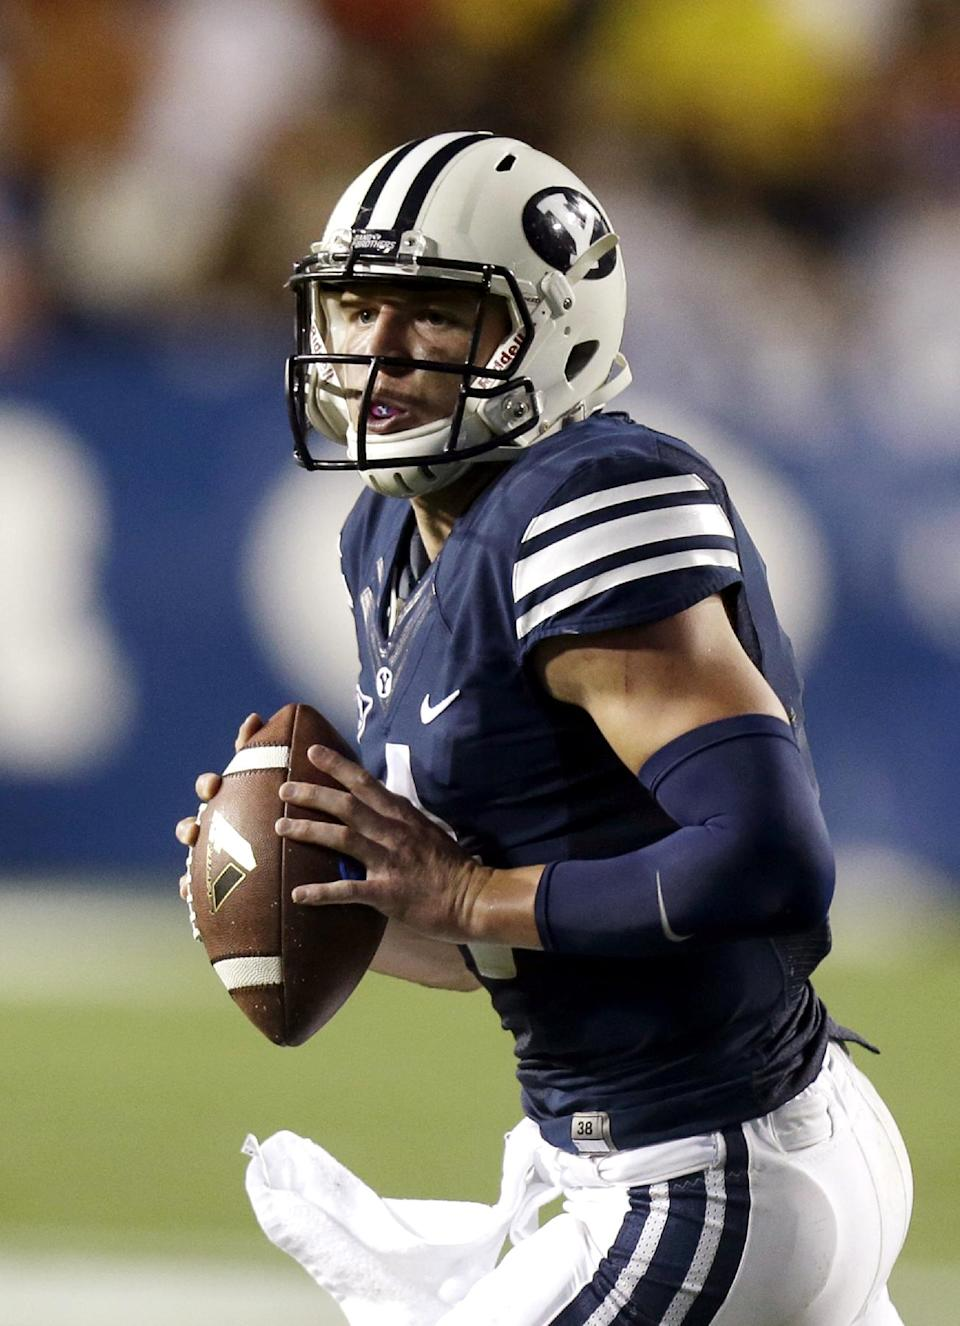 Brigham Young quarterback Taysom Hill (4) carries the ball as he looks down field in the second quarter during an NCAA college football game against Texas, Saturday, Sept. 7, 2013, in Provo, Utah. (AP Photo/Rick Bowmer)